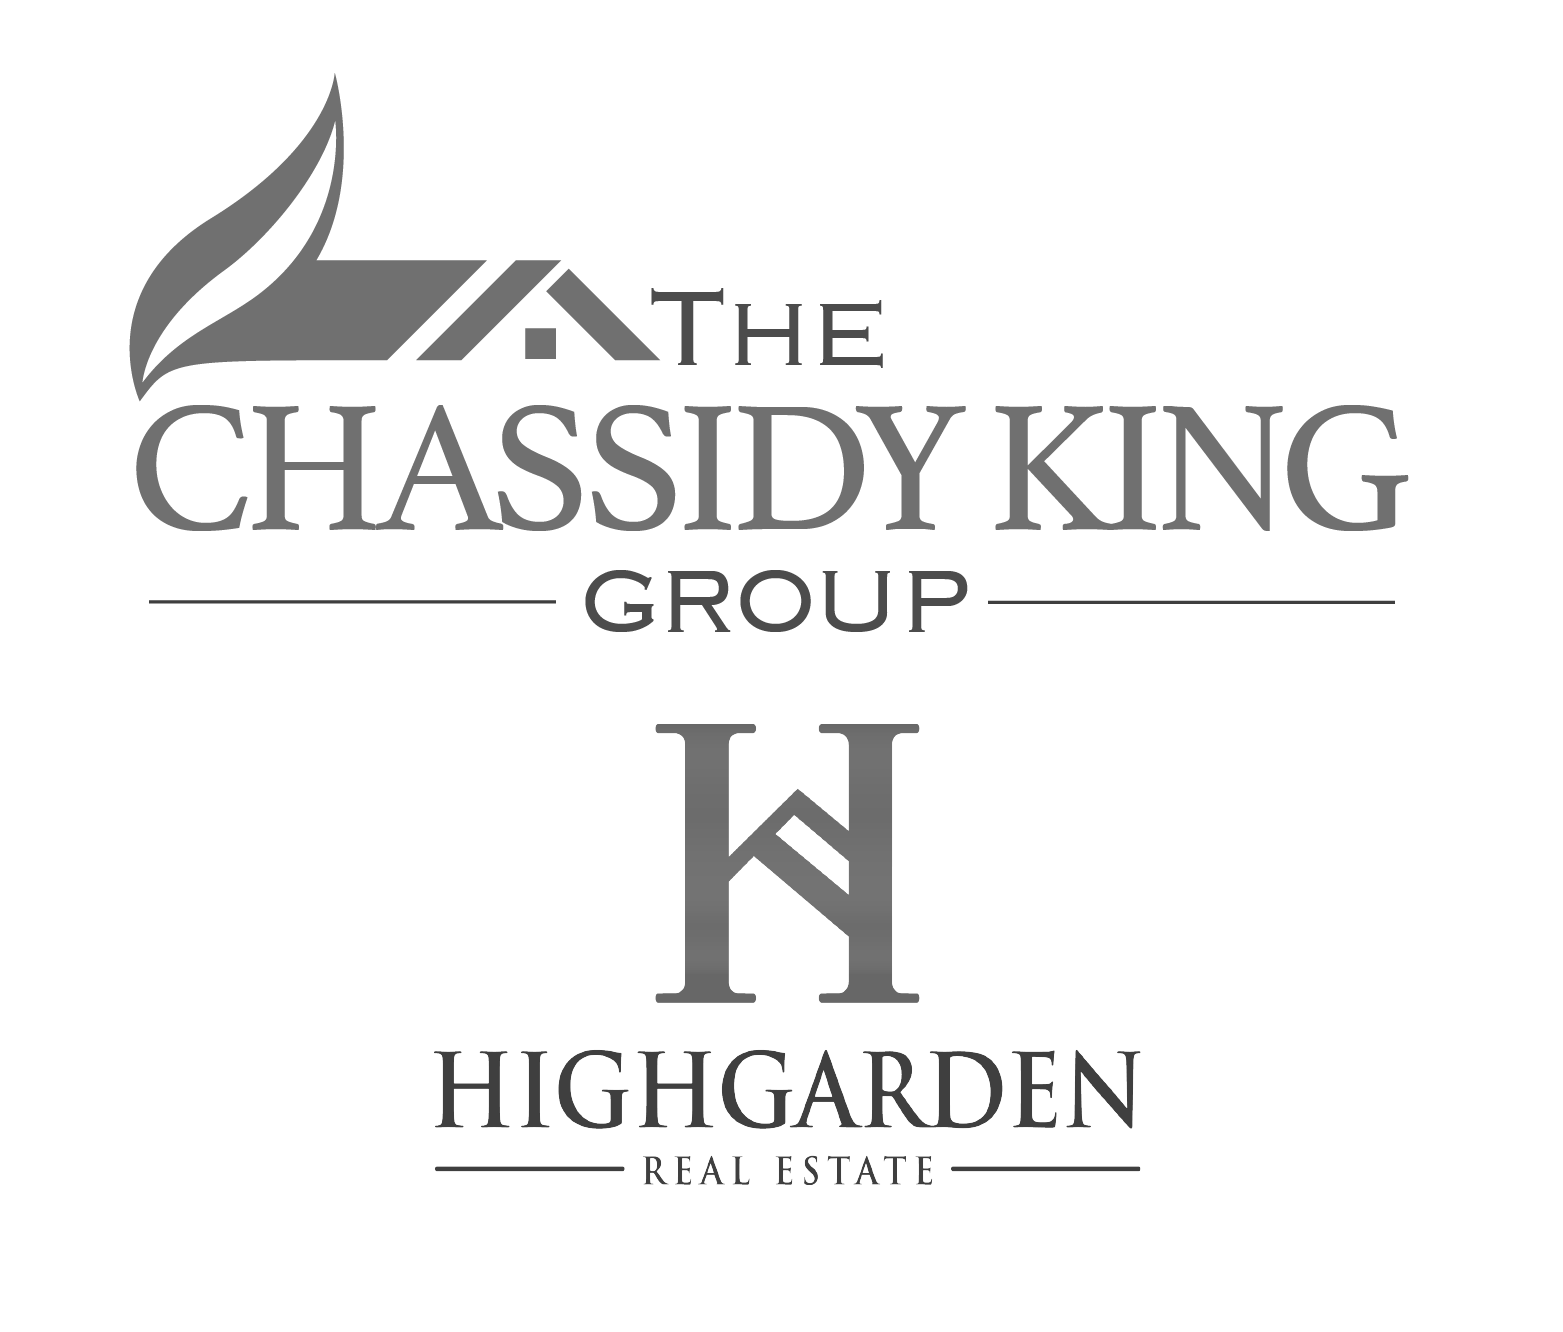 The Chassidy King Group